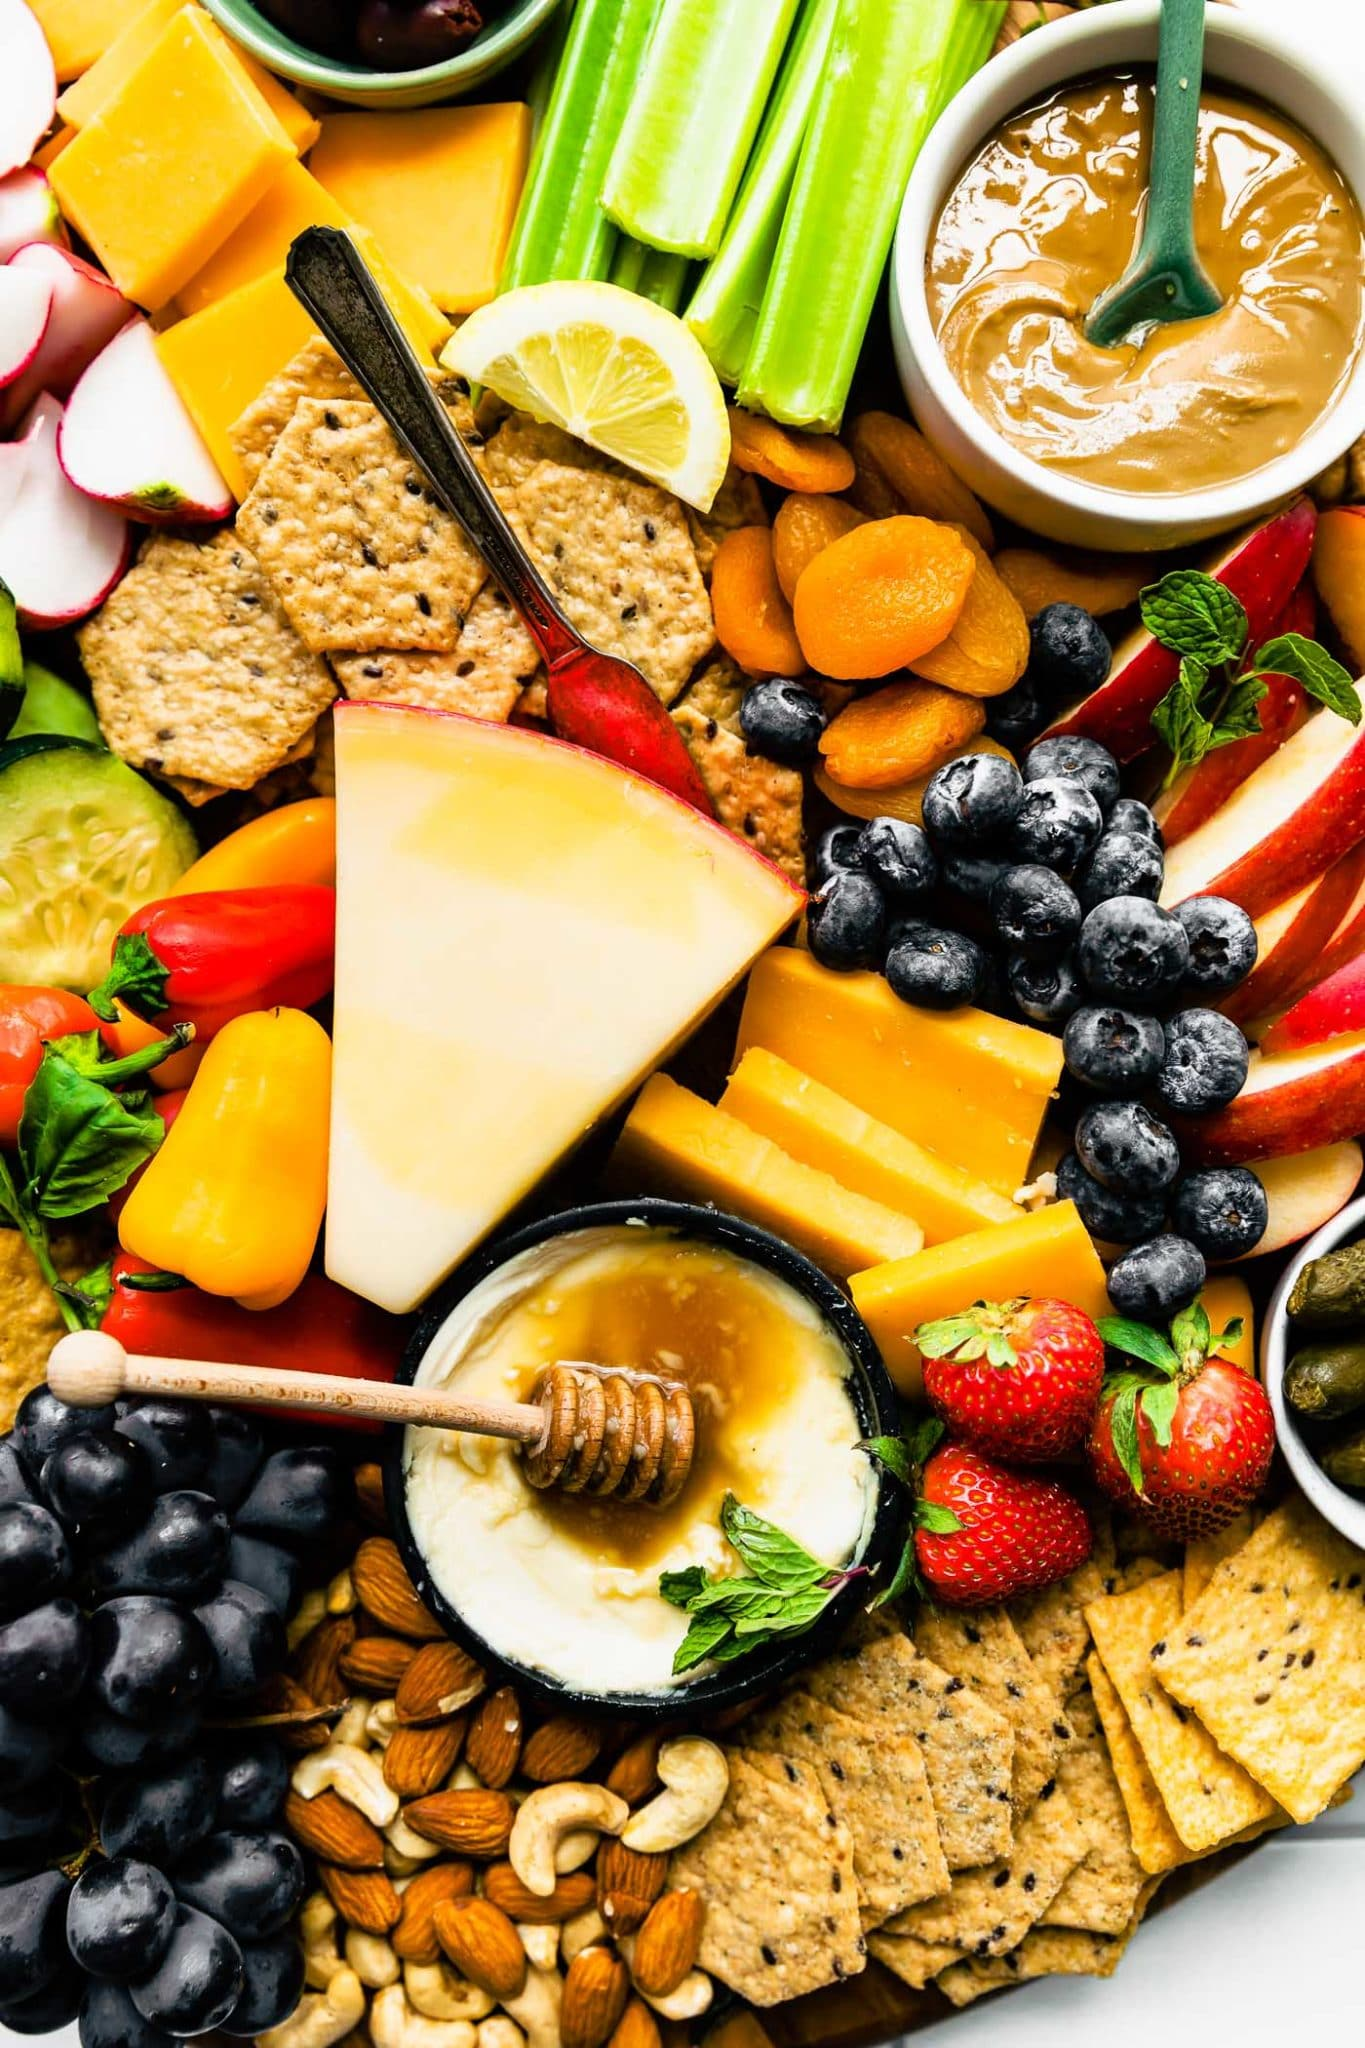 Overhead image of snack board with crackers, cheese, fresh produce, and homemade dips.